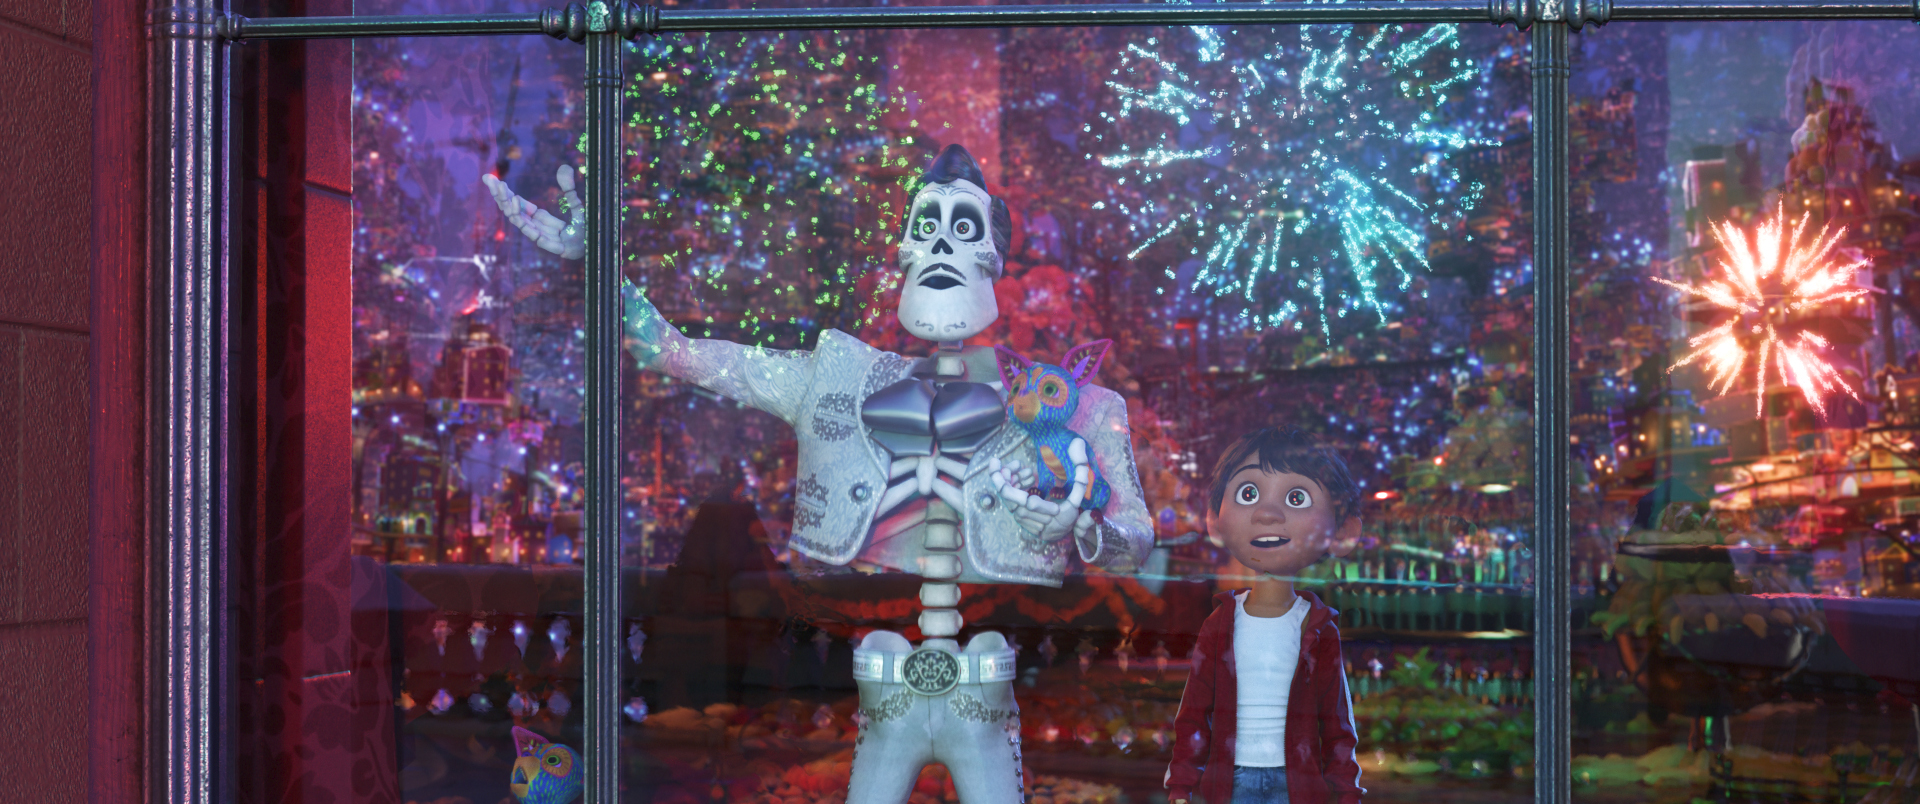 """SPECTACULAR ENCOUNTER – In Disney•Pixar's """"Coco,"""" aspiring musician Miguel (voice of Anthony Gonzalez) takes an extraordinary journey through the Land of the Dead in search of his idol. He finds that Ernesto de la Cruz (voice of Benjamin Bratt) just might be an even bigger star than he was in the Land of the Living. Disney•Pixar's """"Coco"""" opens in U.S. theaters on Nov. 22, 2017. Tickets are on sale now at Fandango and Atom. ©2017 Disney•Pixar. All Rights Reserved."""